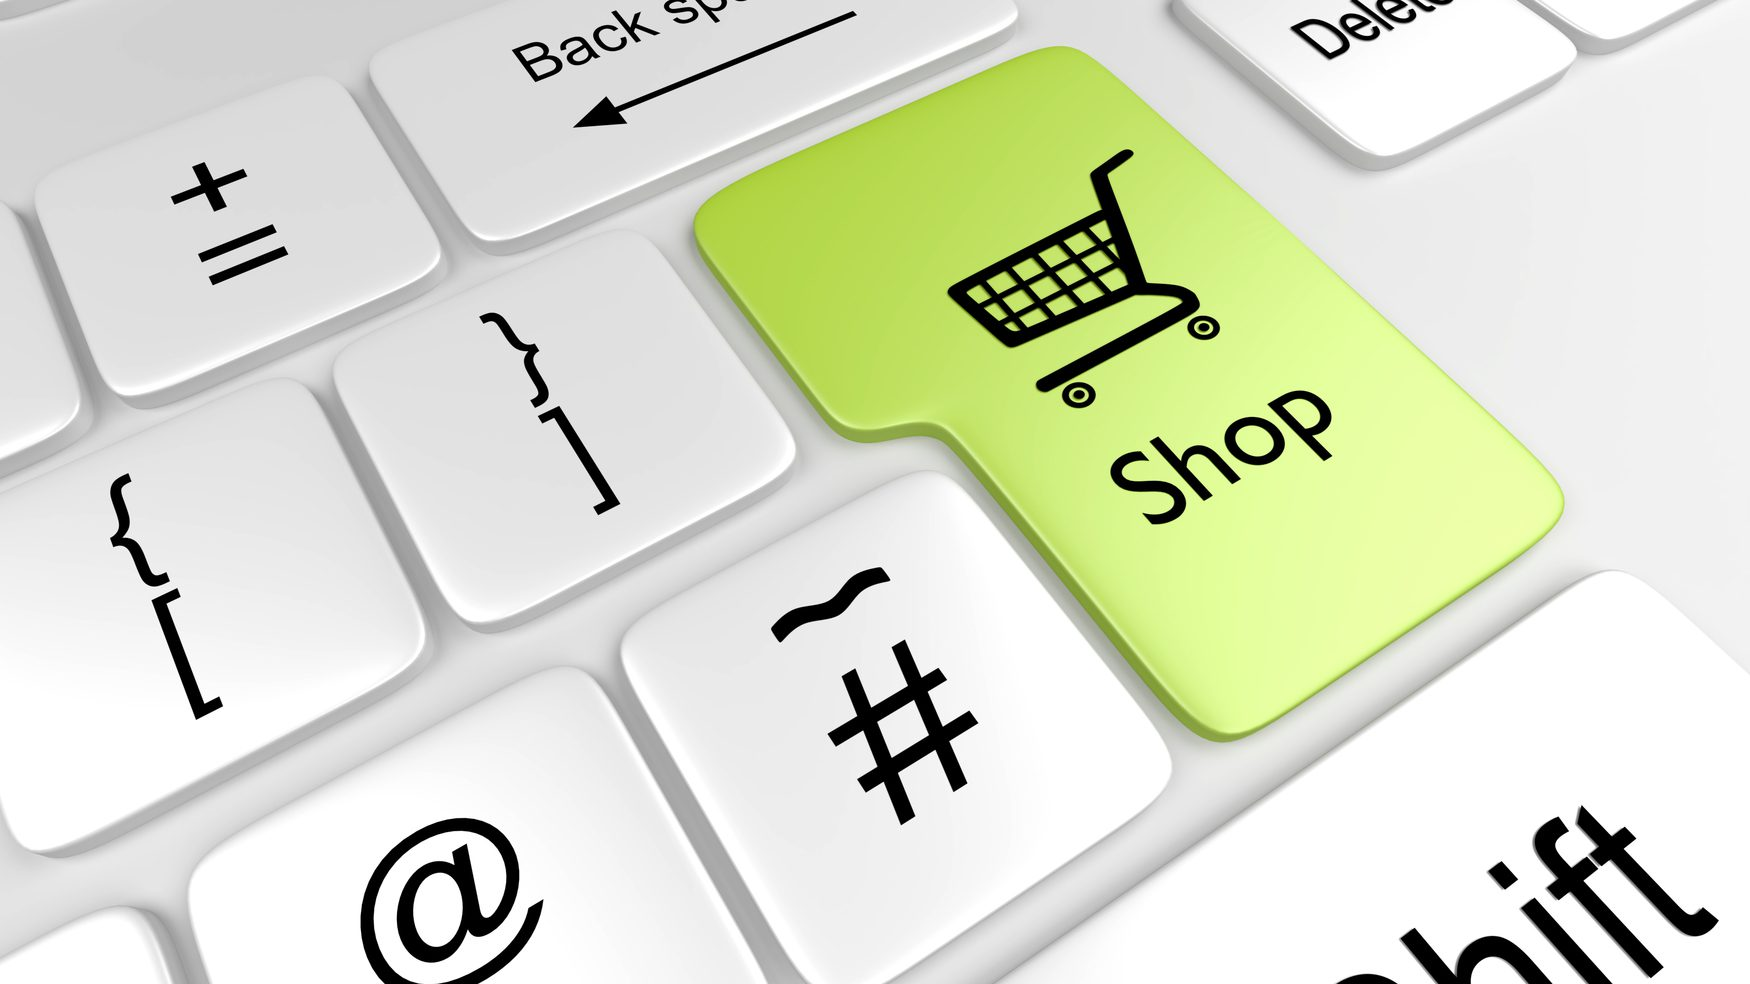 cropped online shopping computer keyboard commerce shopping cart shopping computer key 1445129 pxhere.com  1 - Home